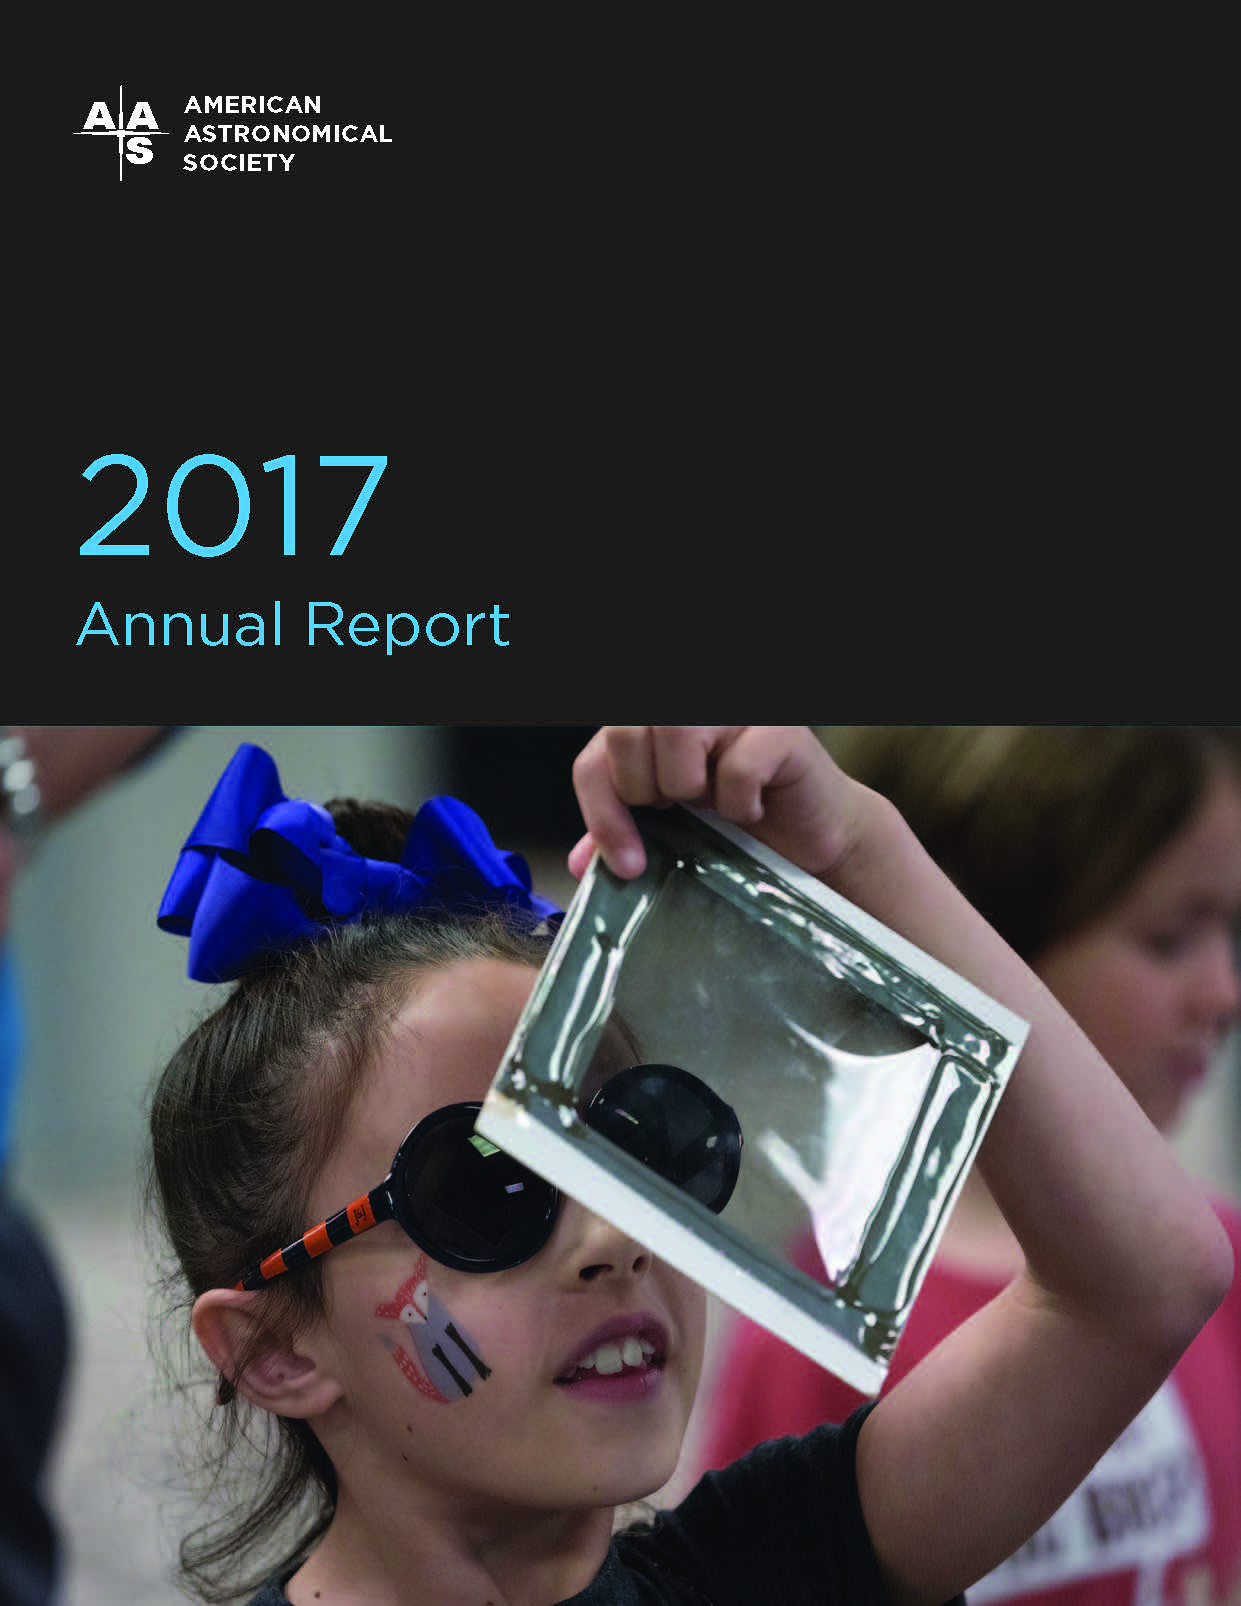 AAS 2017 Annual Report